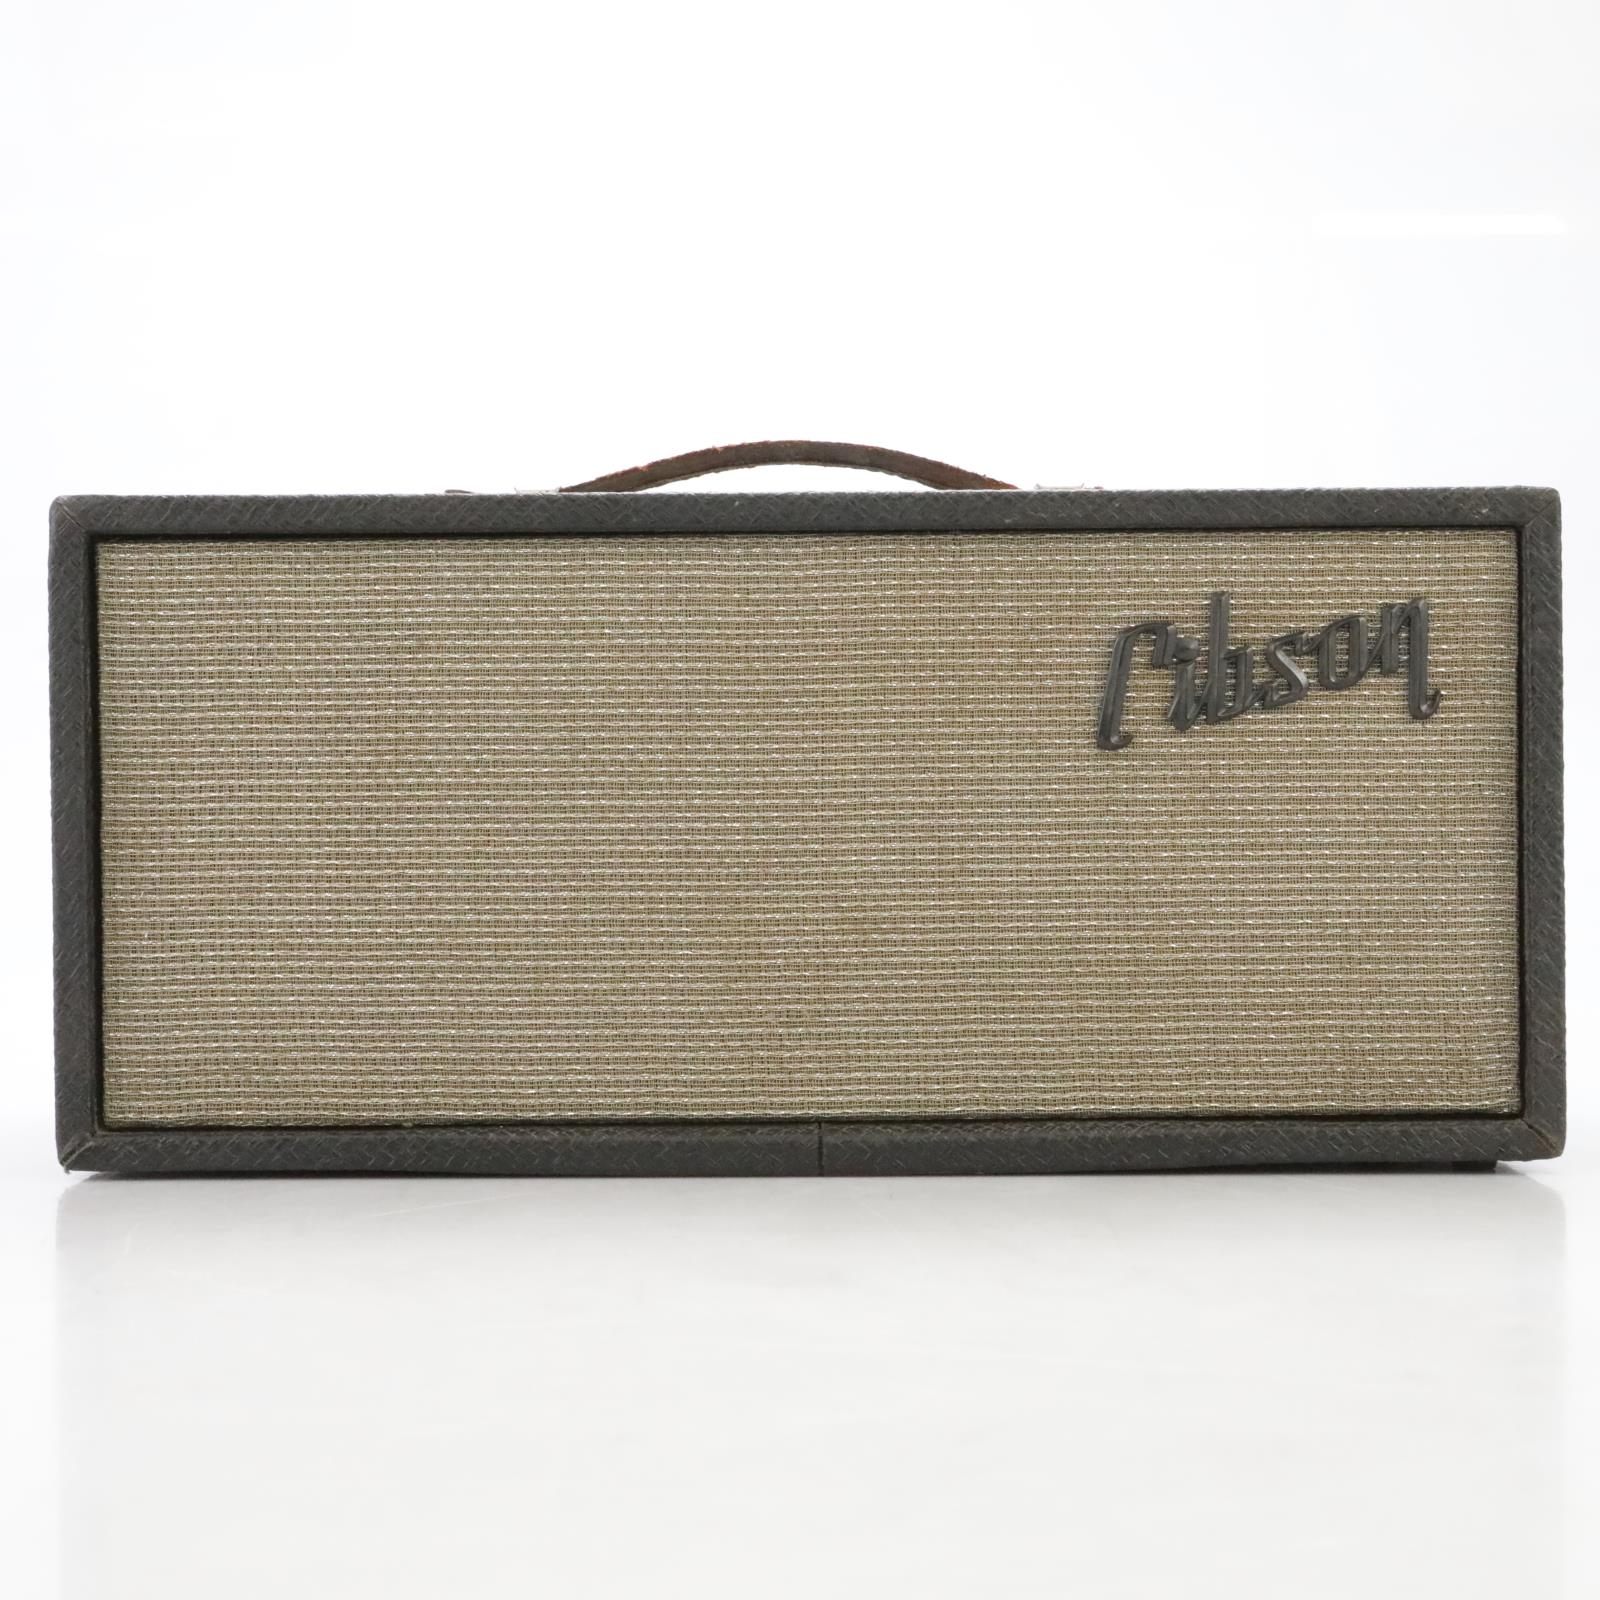 Gibson Reverb III Reverberation Effect Unit w/ Footswitch #40297